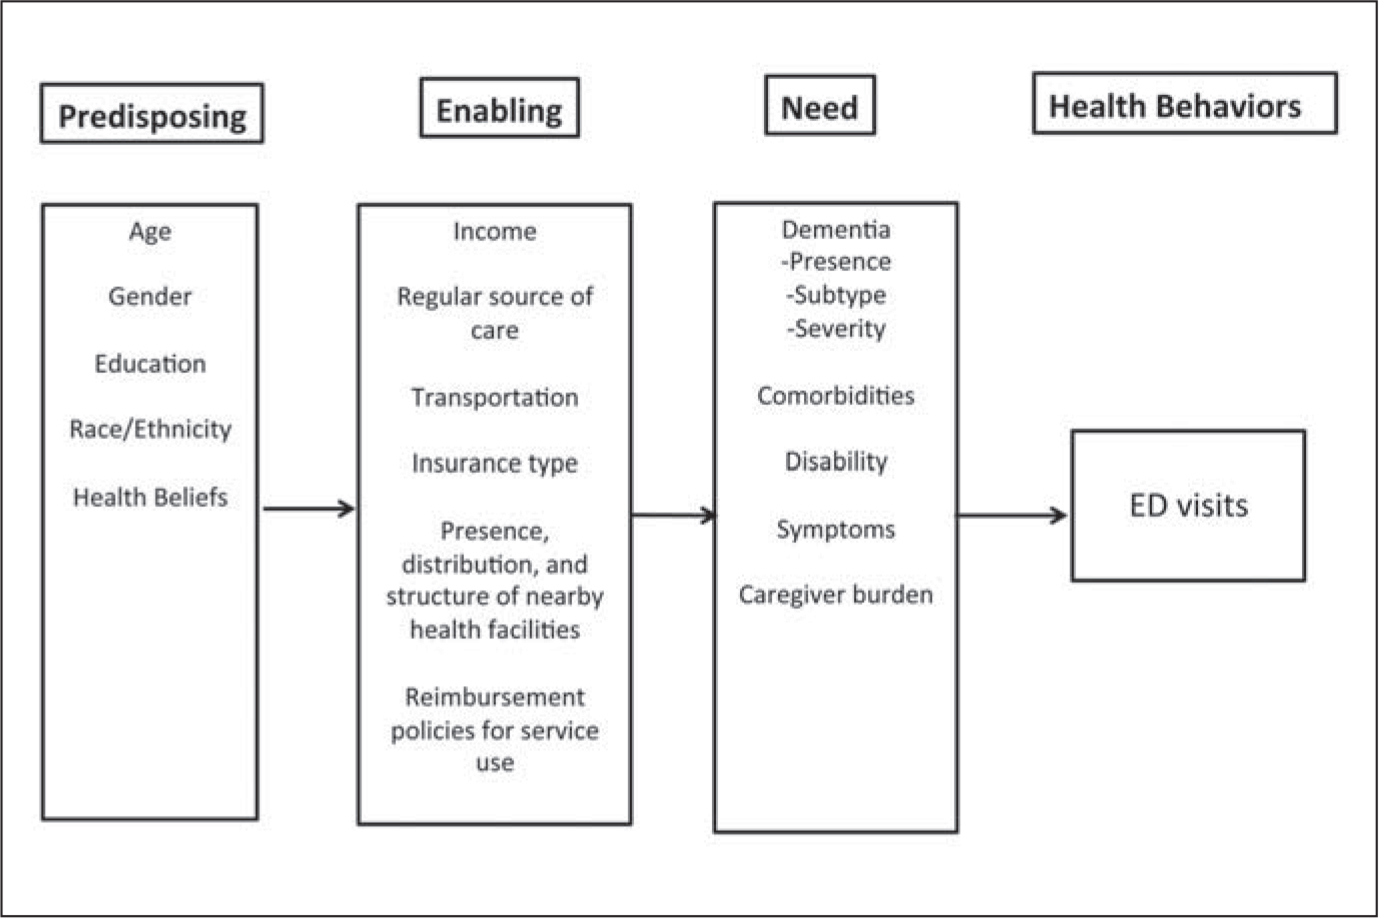 The Andersen Behavioral Model of Health Care Use adapted to emergency department (ED) use by community-dwelling individuals with dementia.